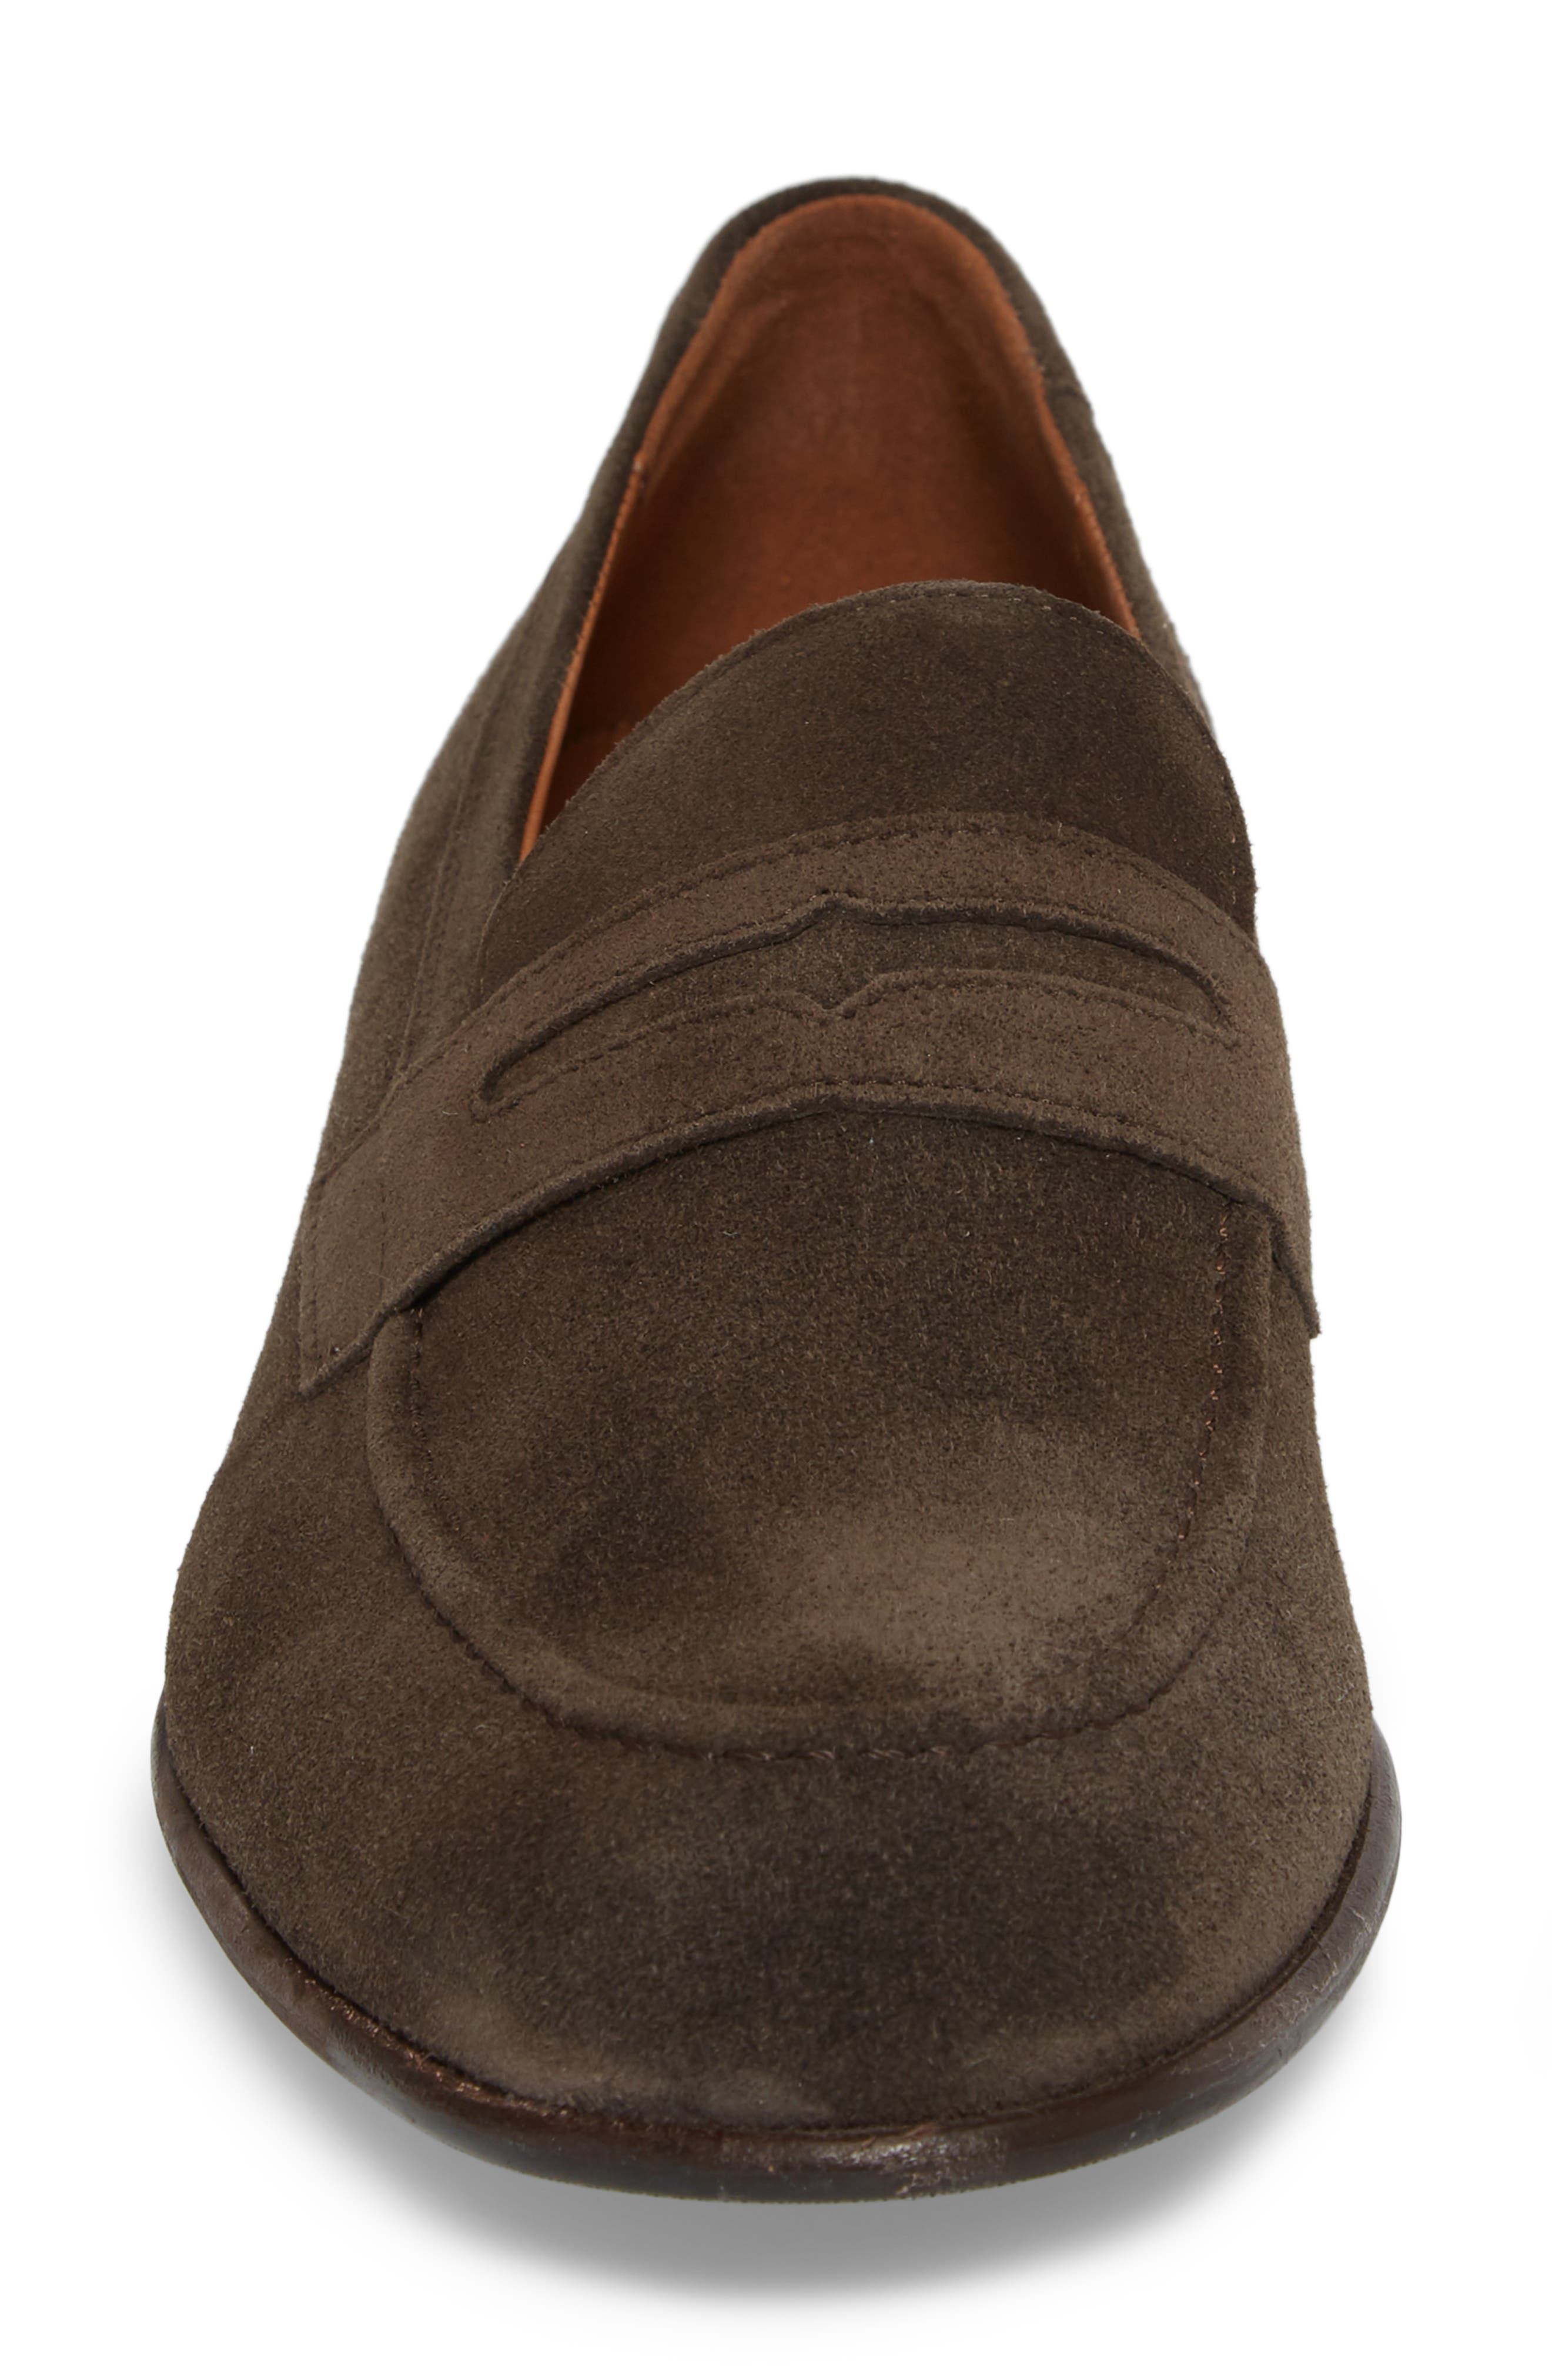 Paxton Penny Loafer,                             Alternate thumbnail 4, color,                             BROWN SUEDE